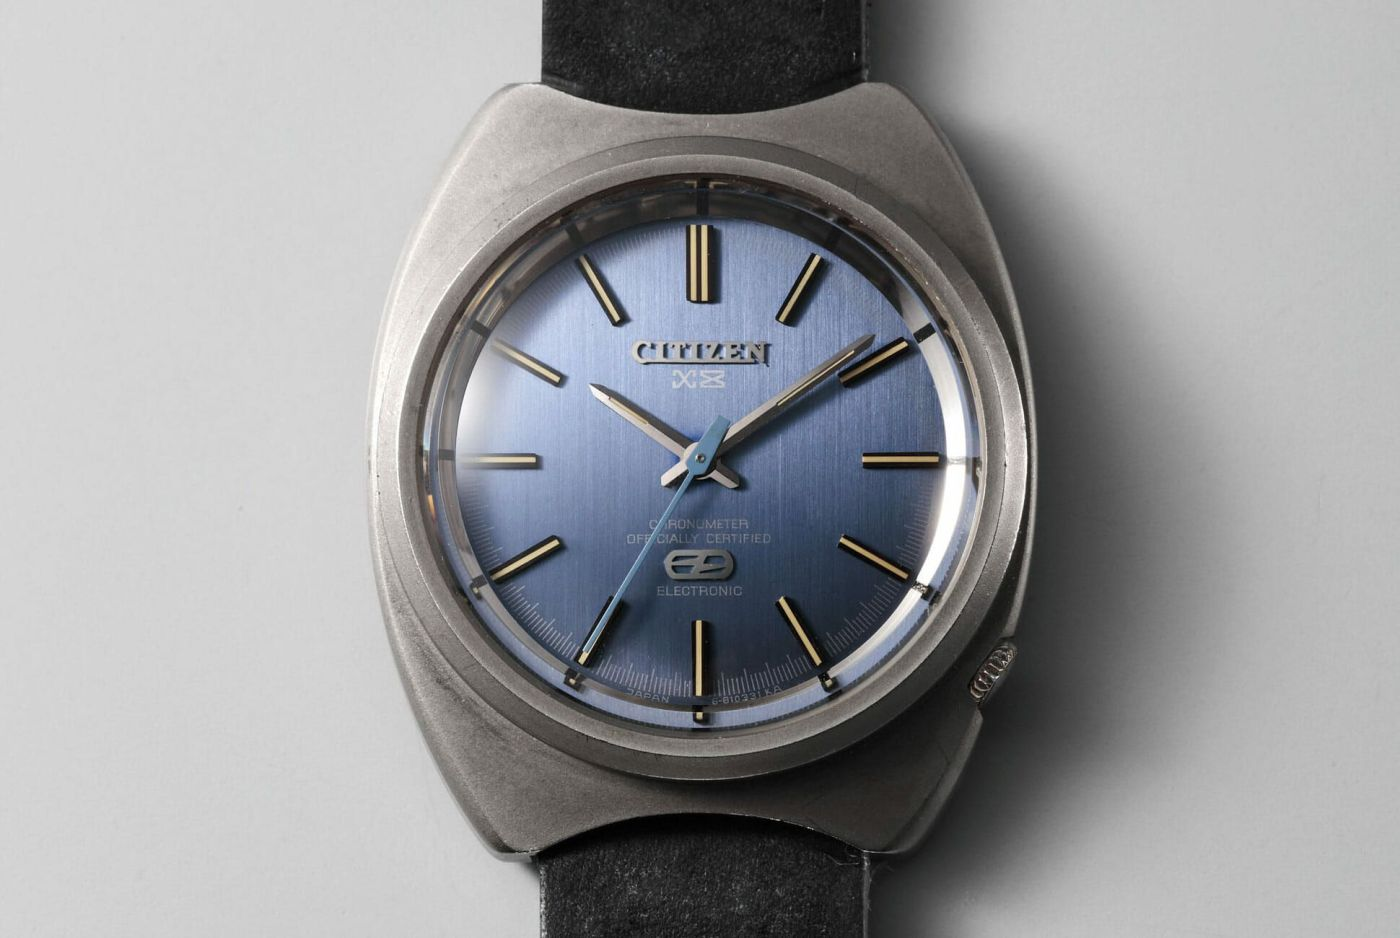 Citizen vintage X8 Chronometer